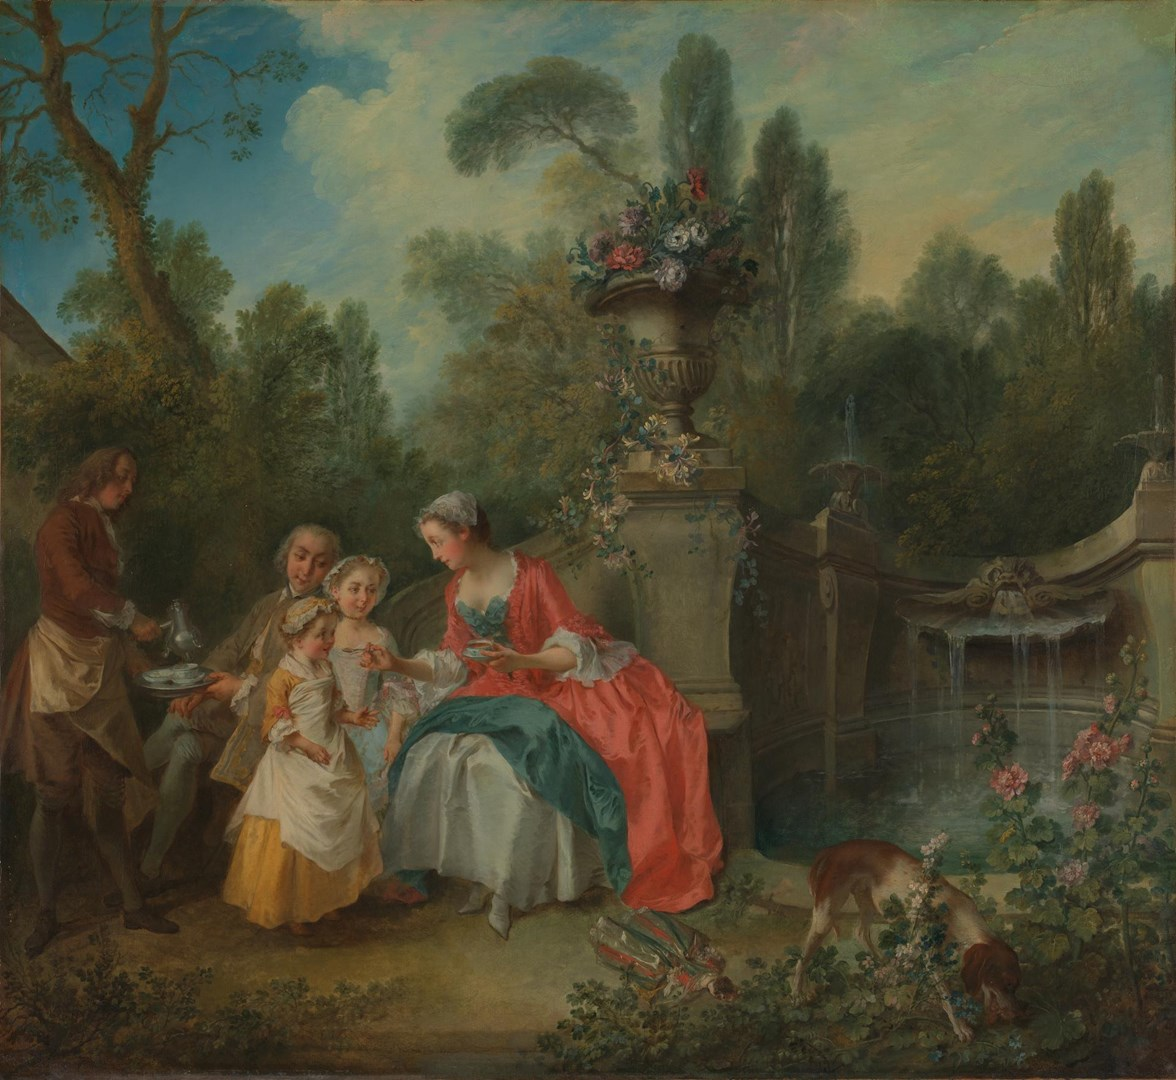 A Lady in a Garden having Coffee with Children by Nicolas Lancret